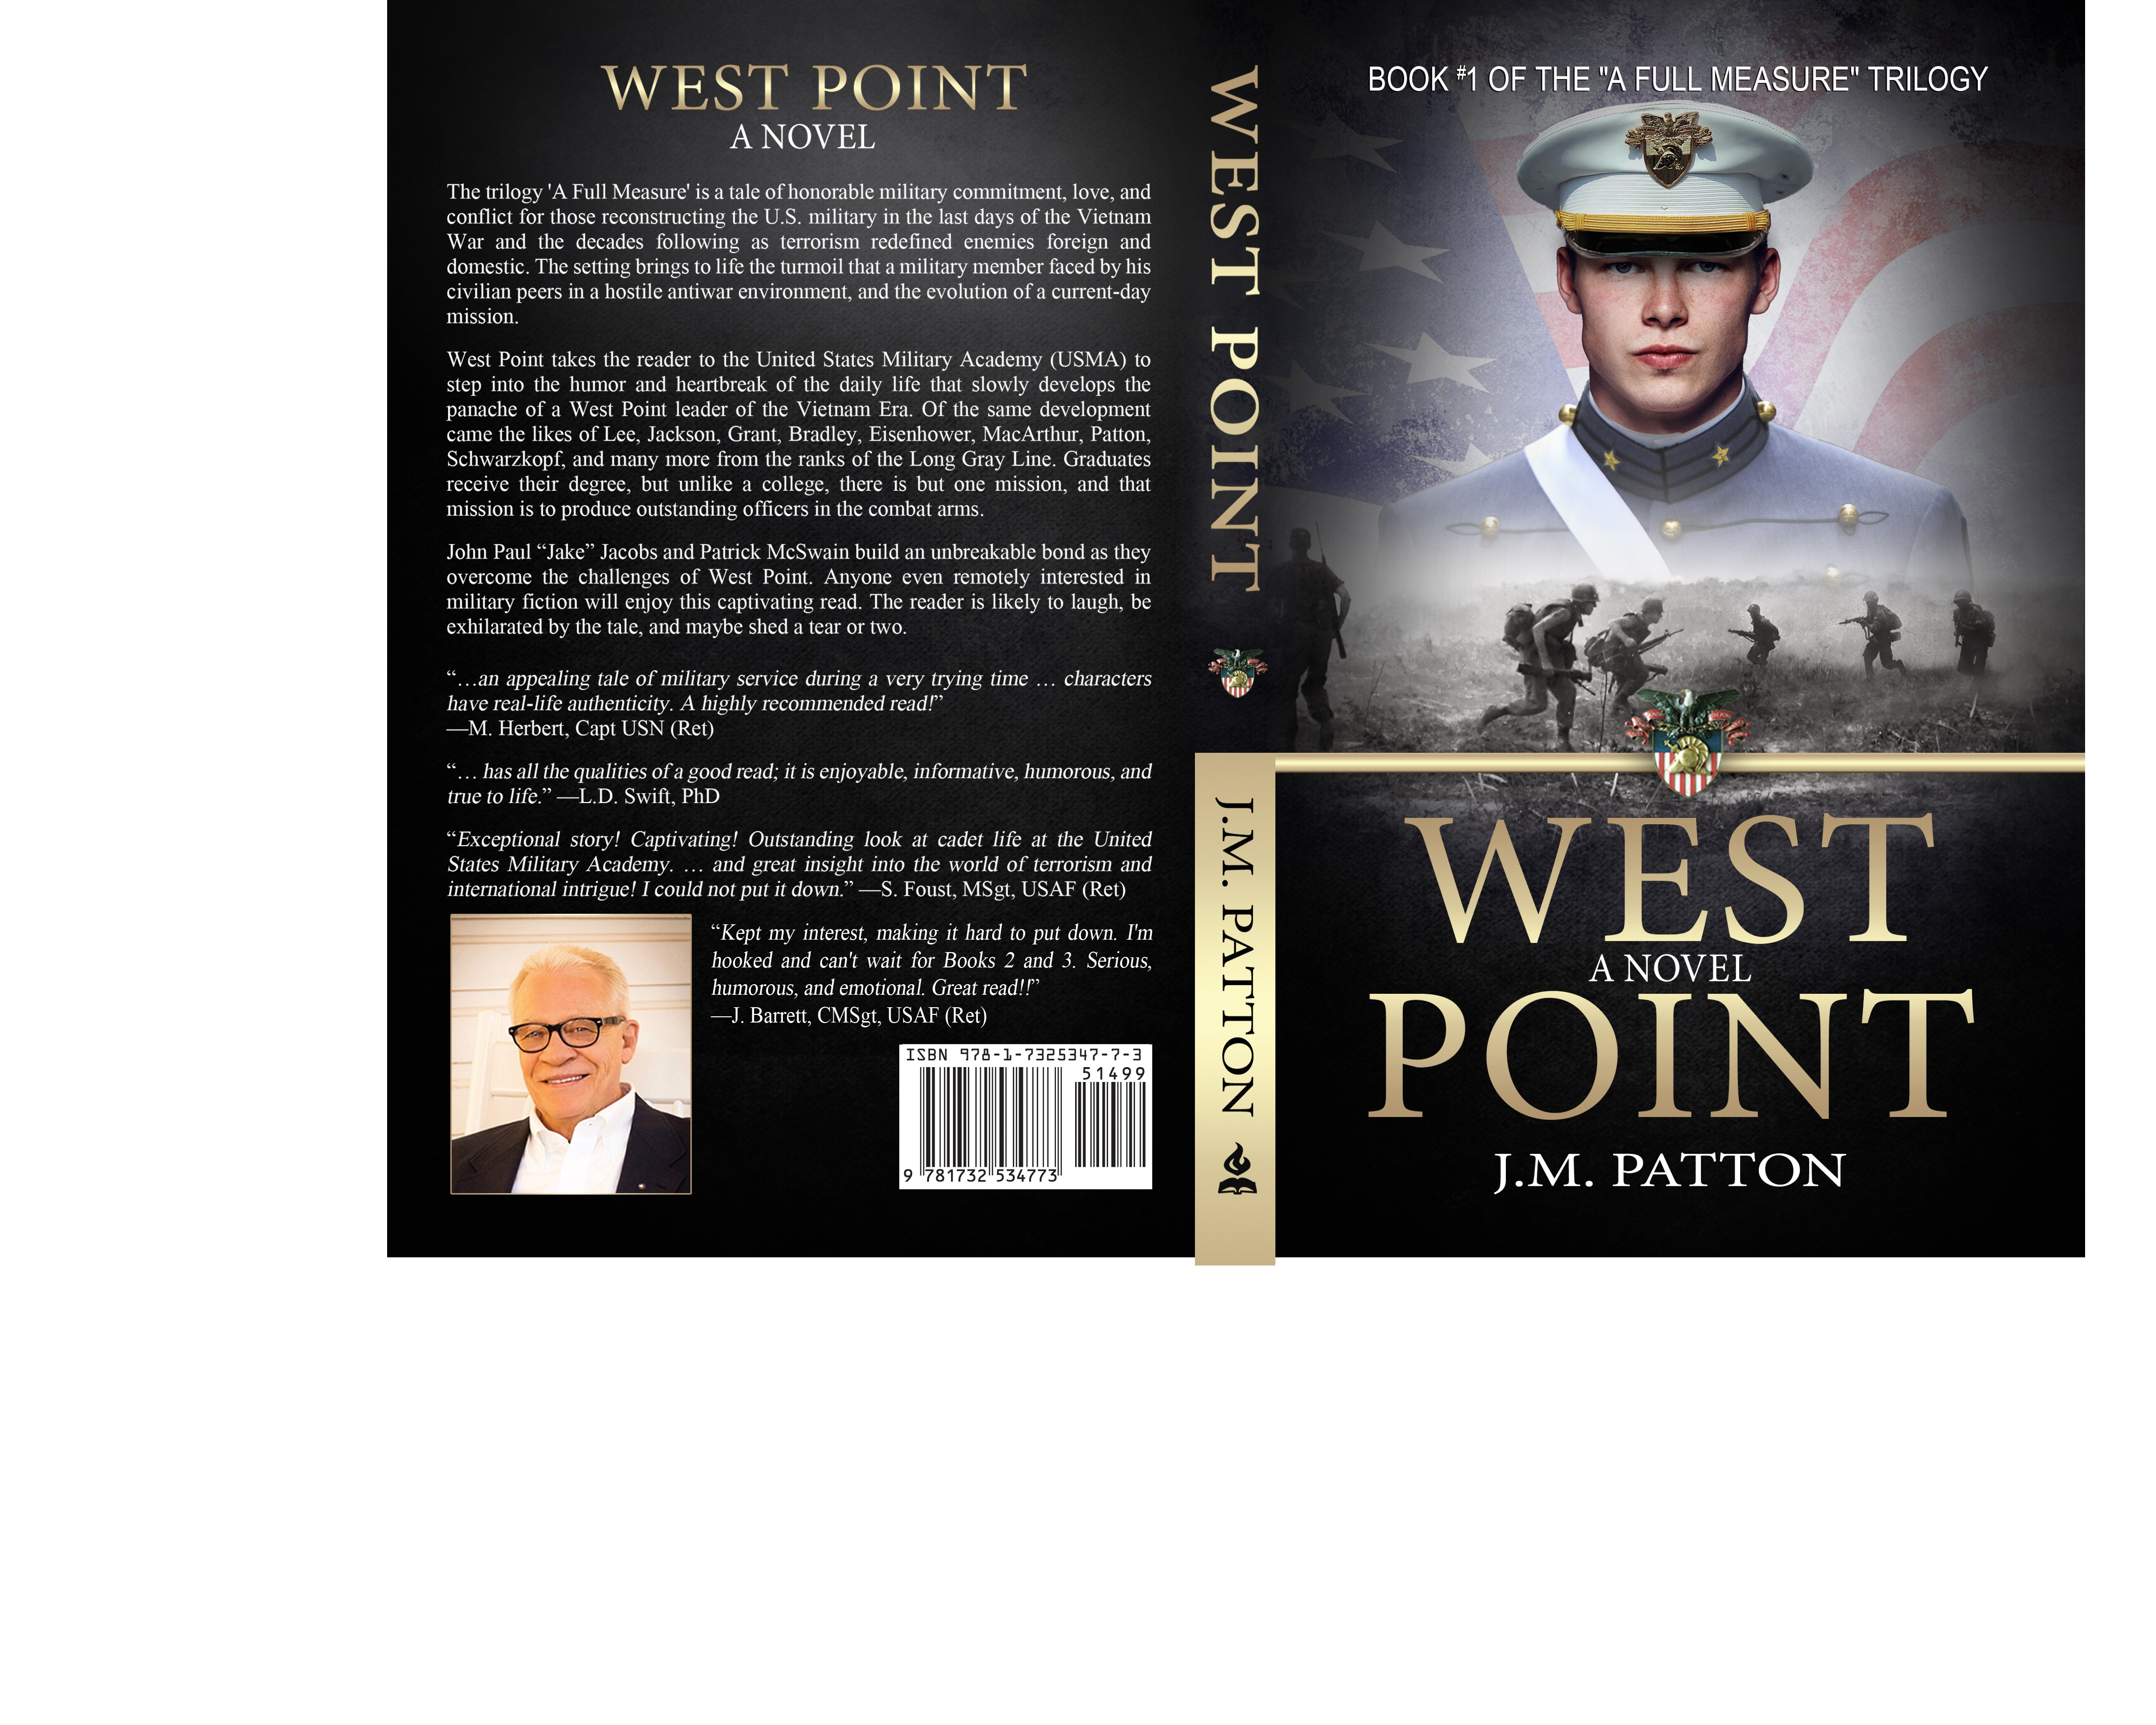 (NEW) Design an inspiring, patriotic, and simple book cover for a military novel